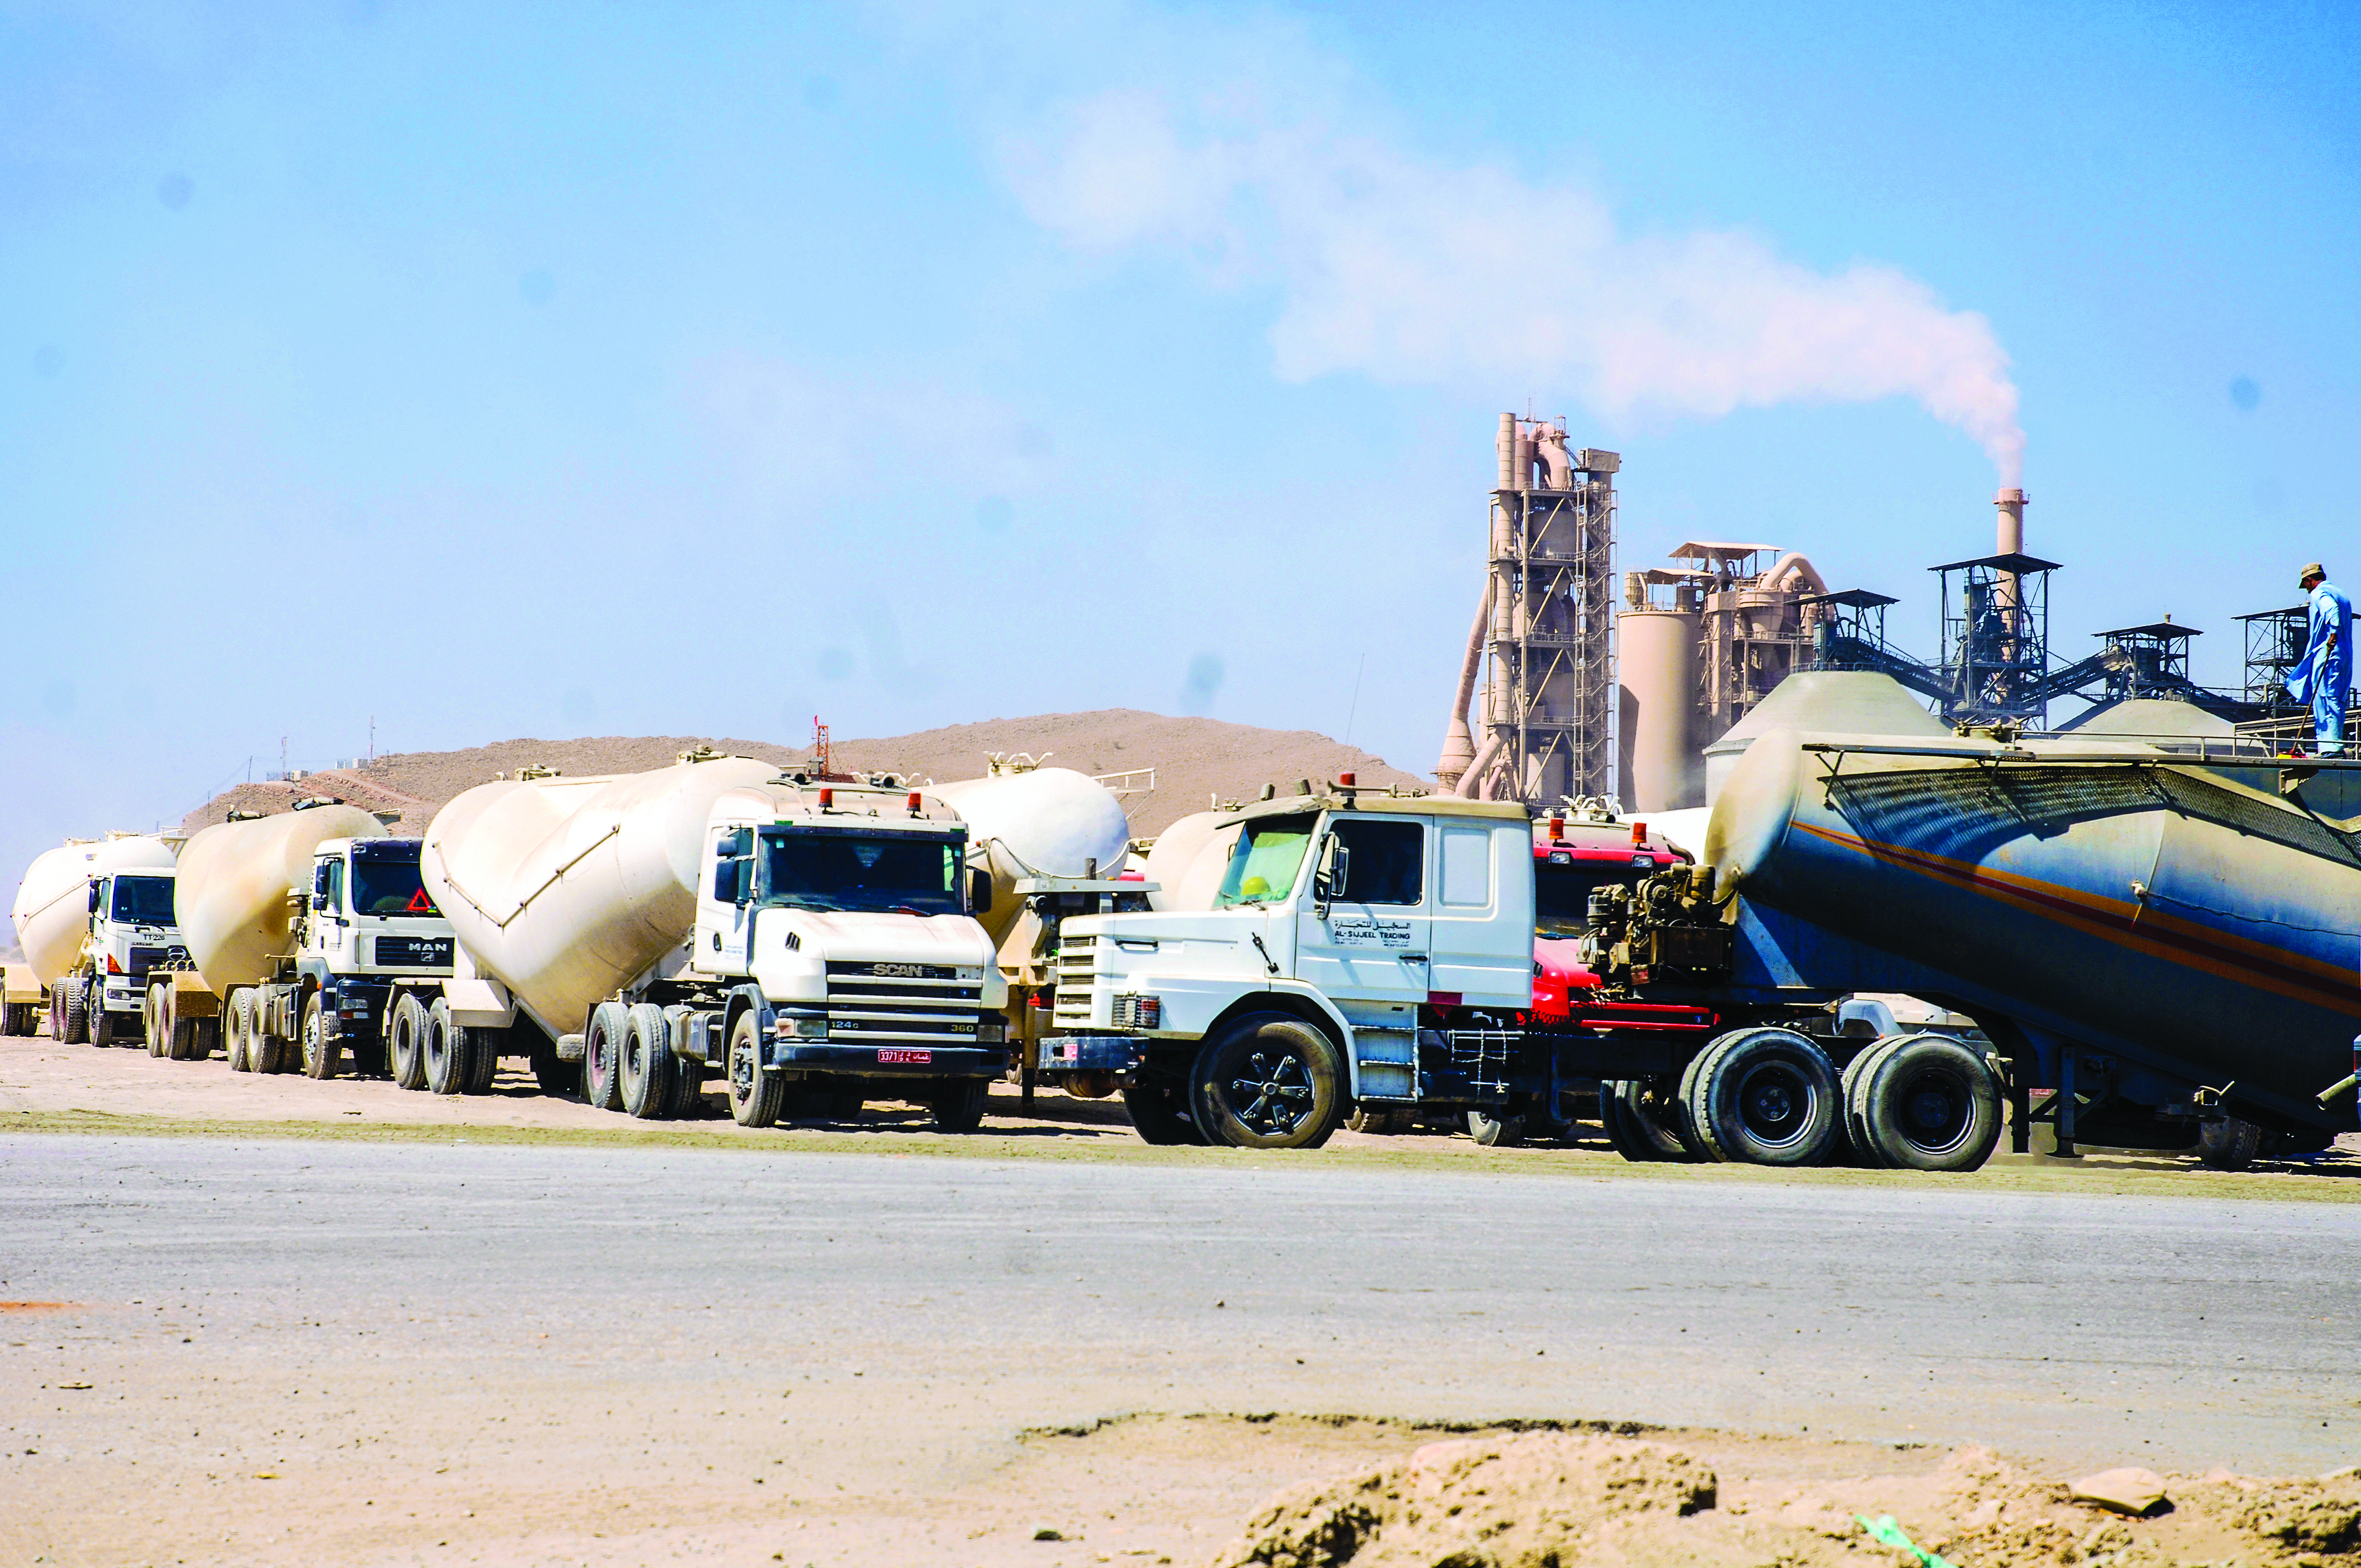 Cement firms in Oman plan joint venture in Duqm